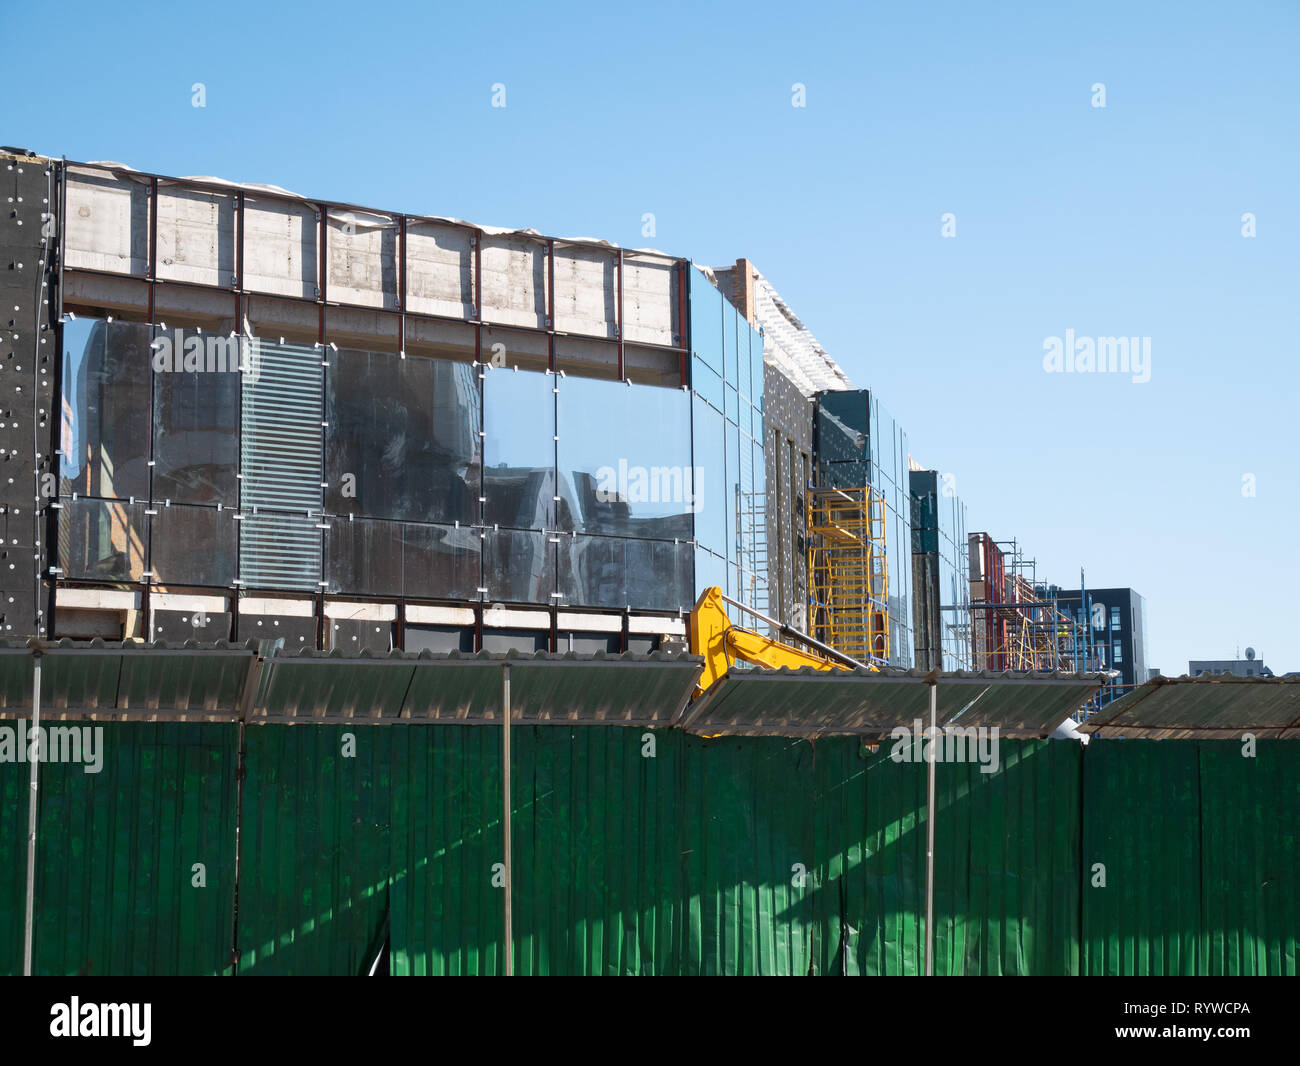 long green fence enclose construction site of small office building. outdoor image with blue clear sky on background - Stock Image